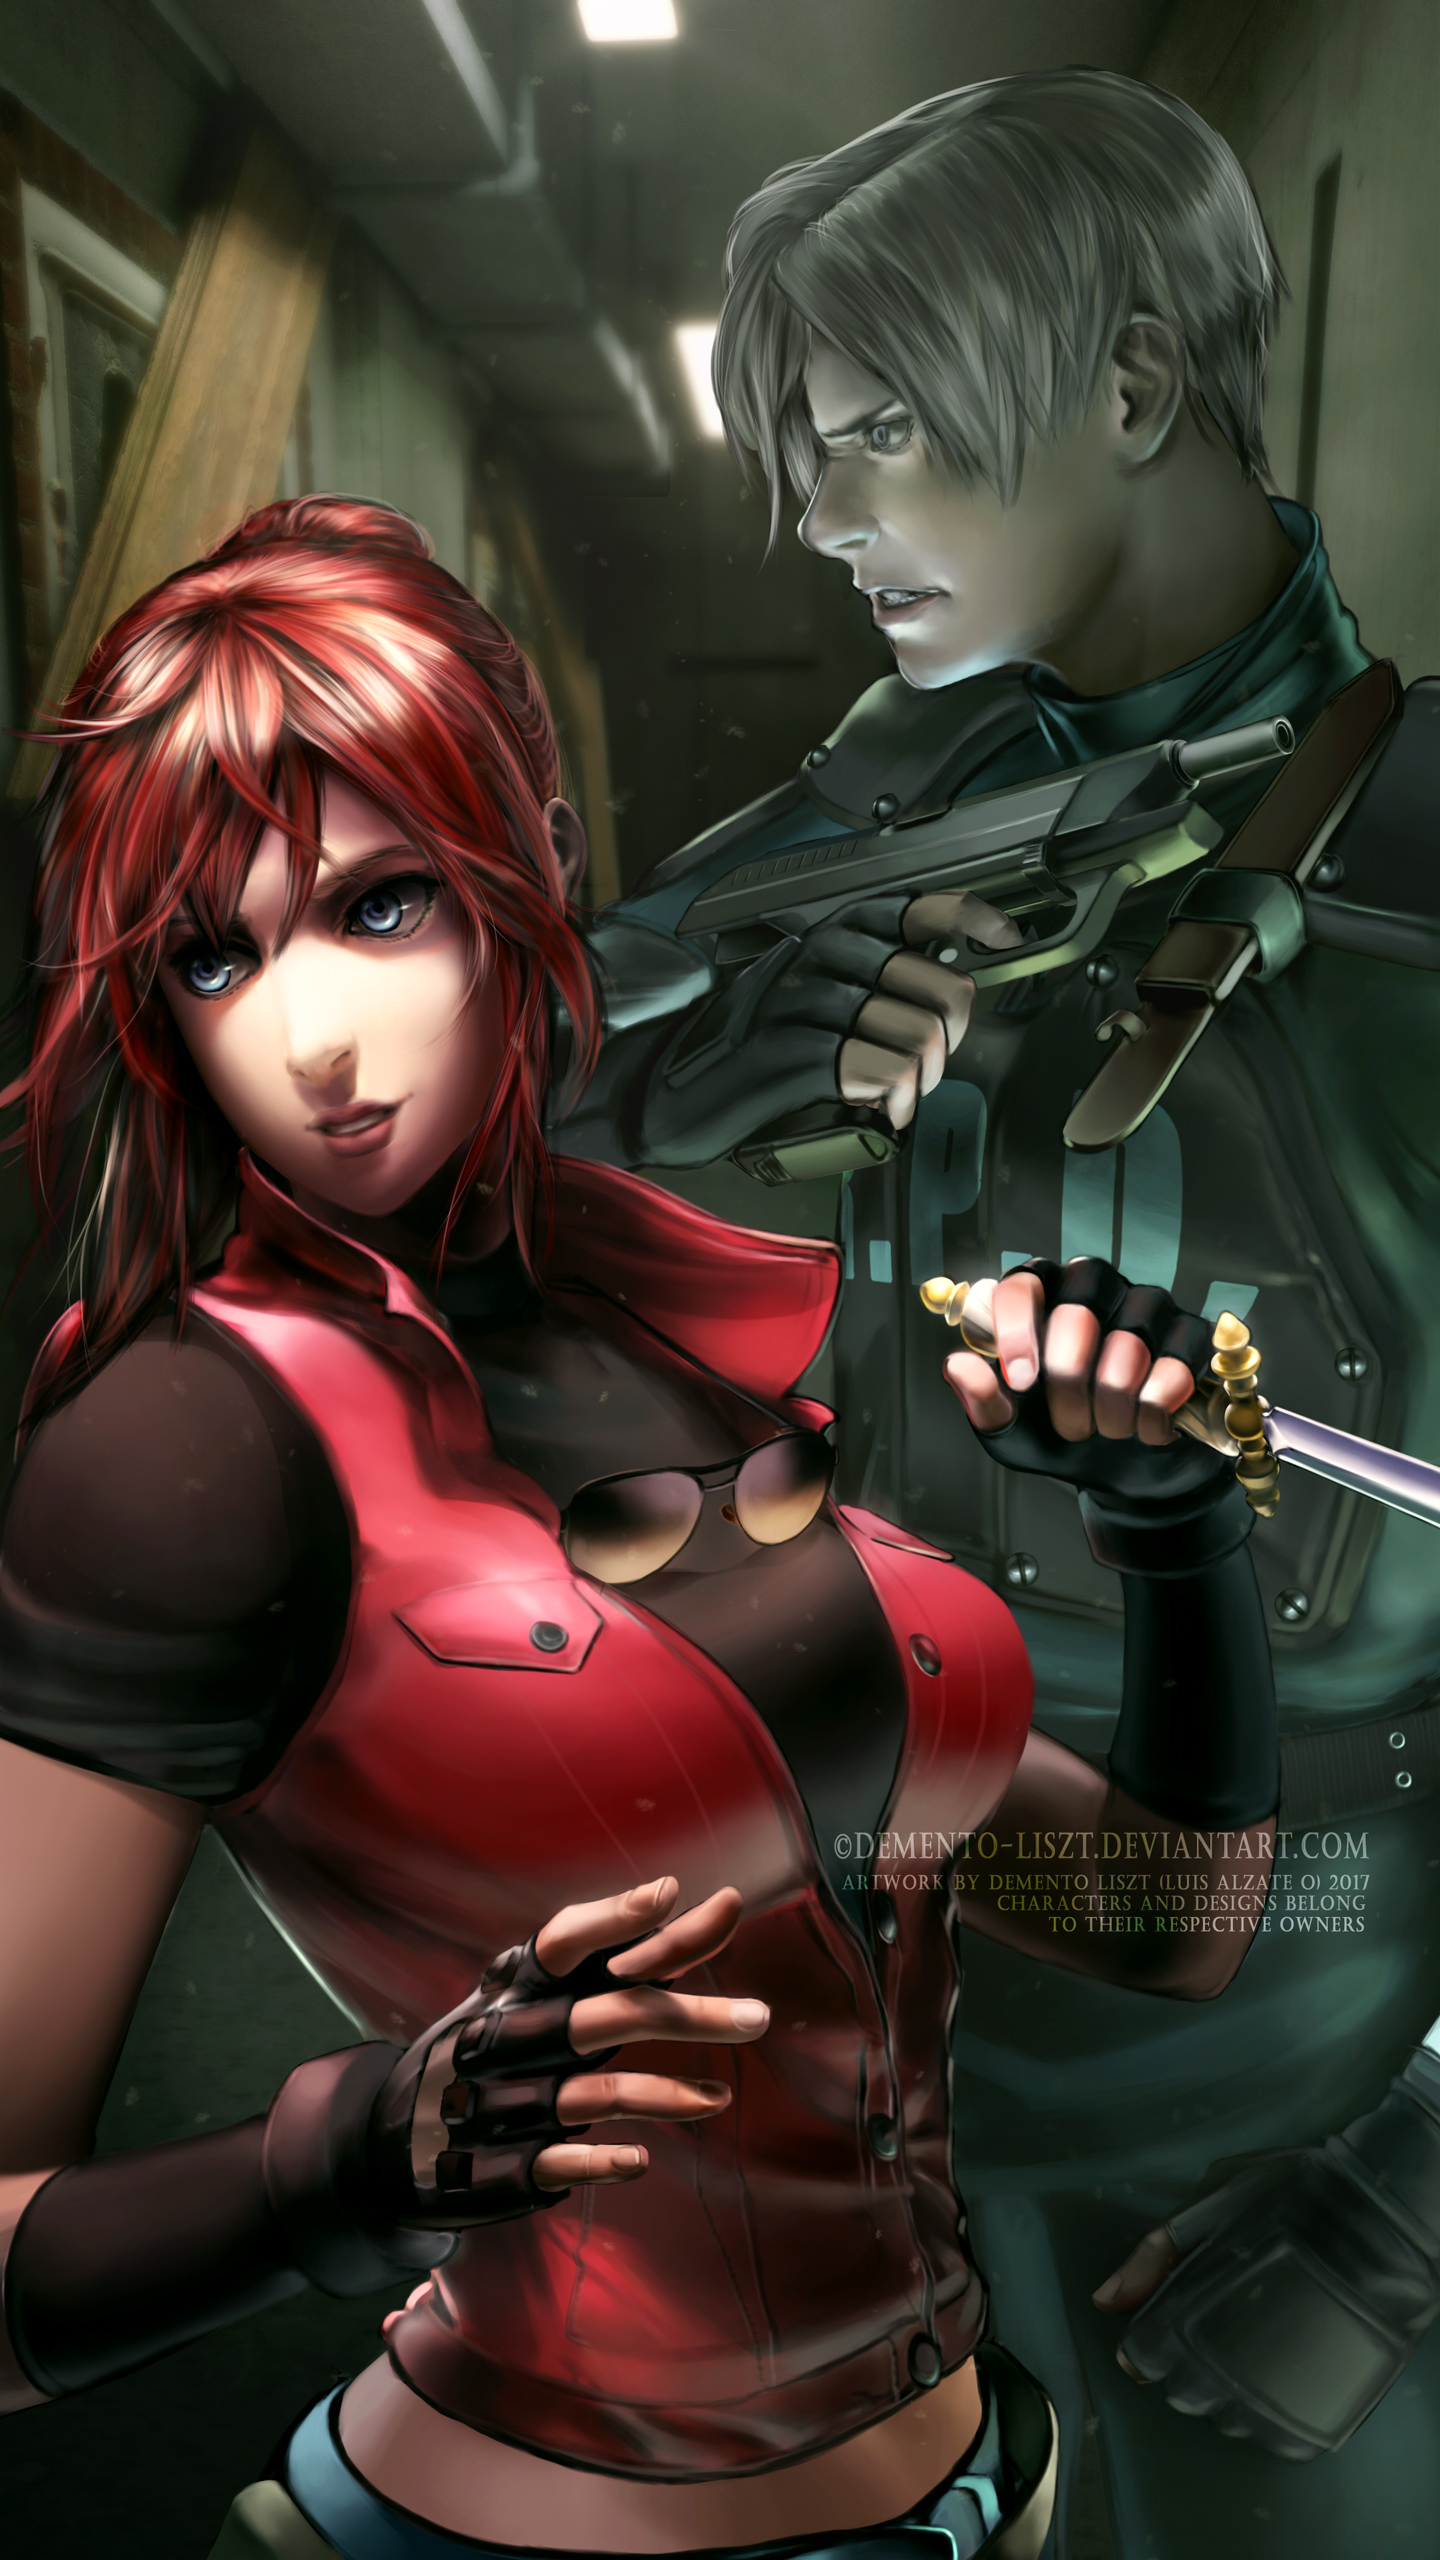 Resident Evil 2 Fan Art Claire And Leon By Demento Liszt On Deviantart